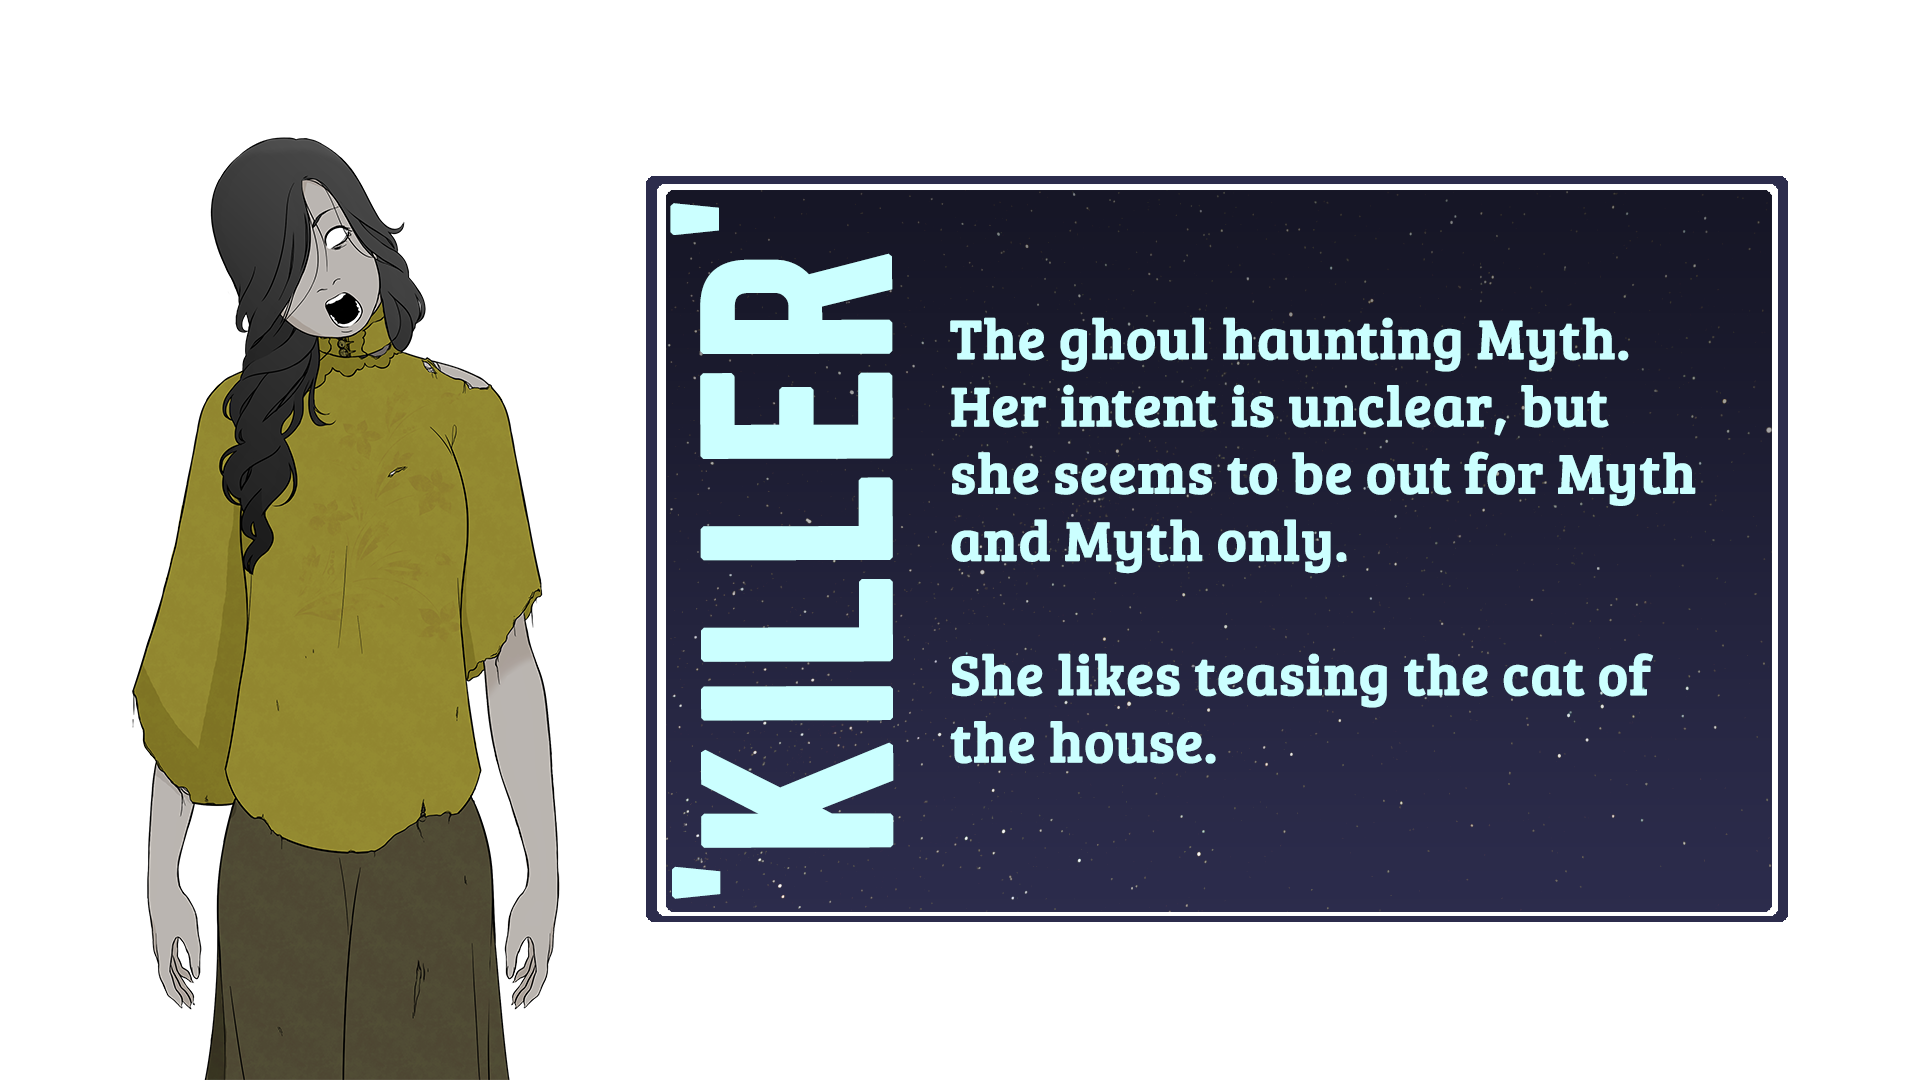 Femme looking person with their mouth open wide. Text reads 'Killer. The ghoul haunting myth. Her intent is unclear, but she seemed to be out for myth and myth only. She likes teasing the cat of the house.